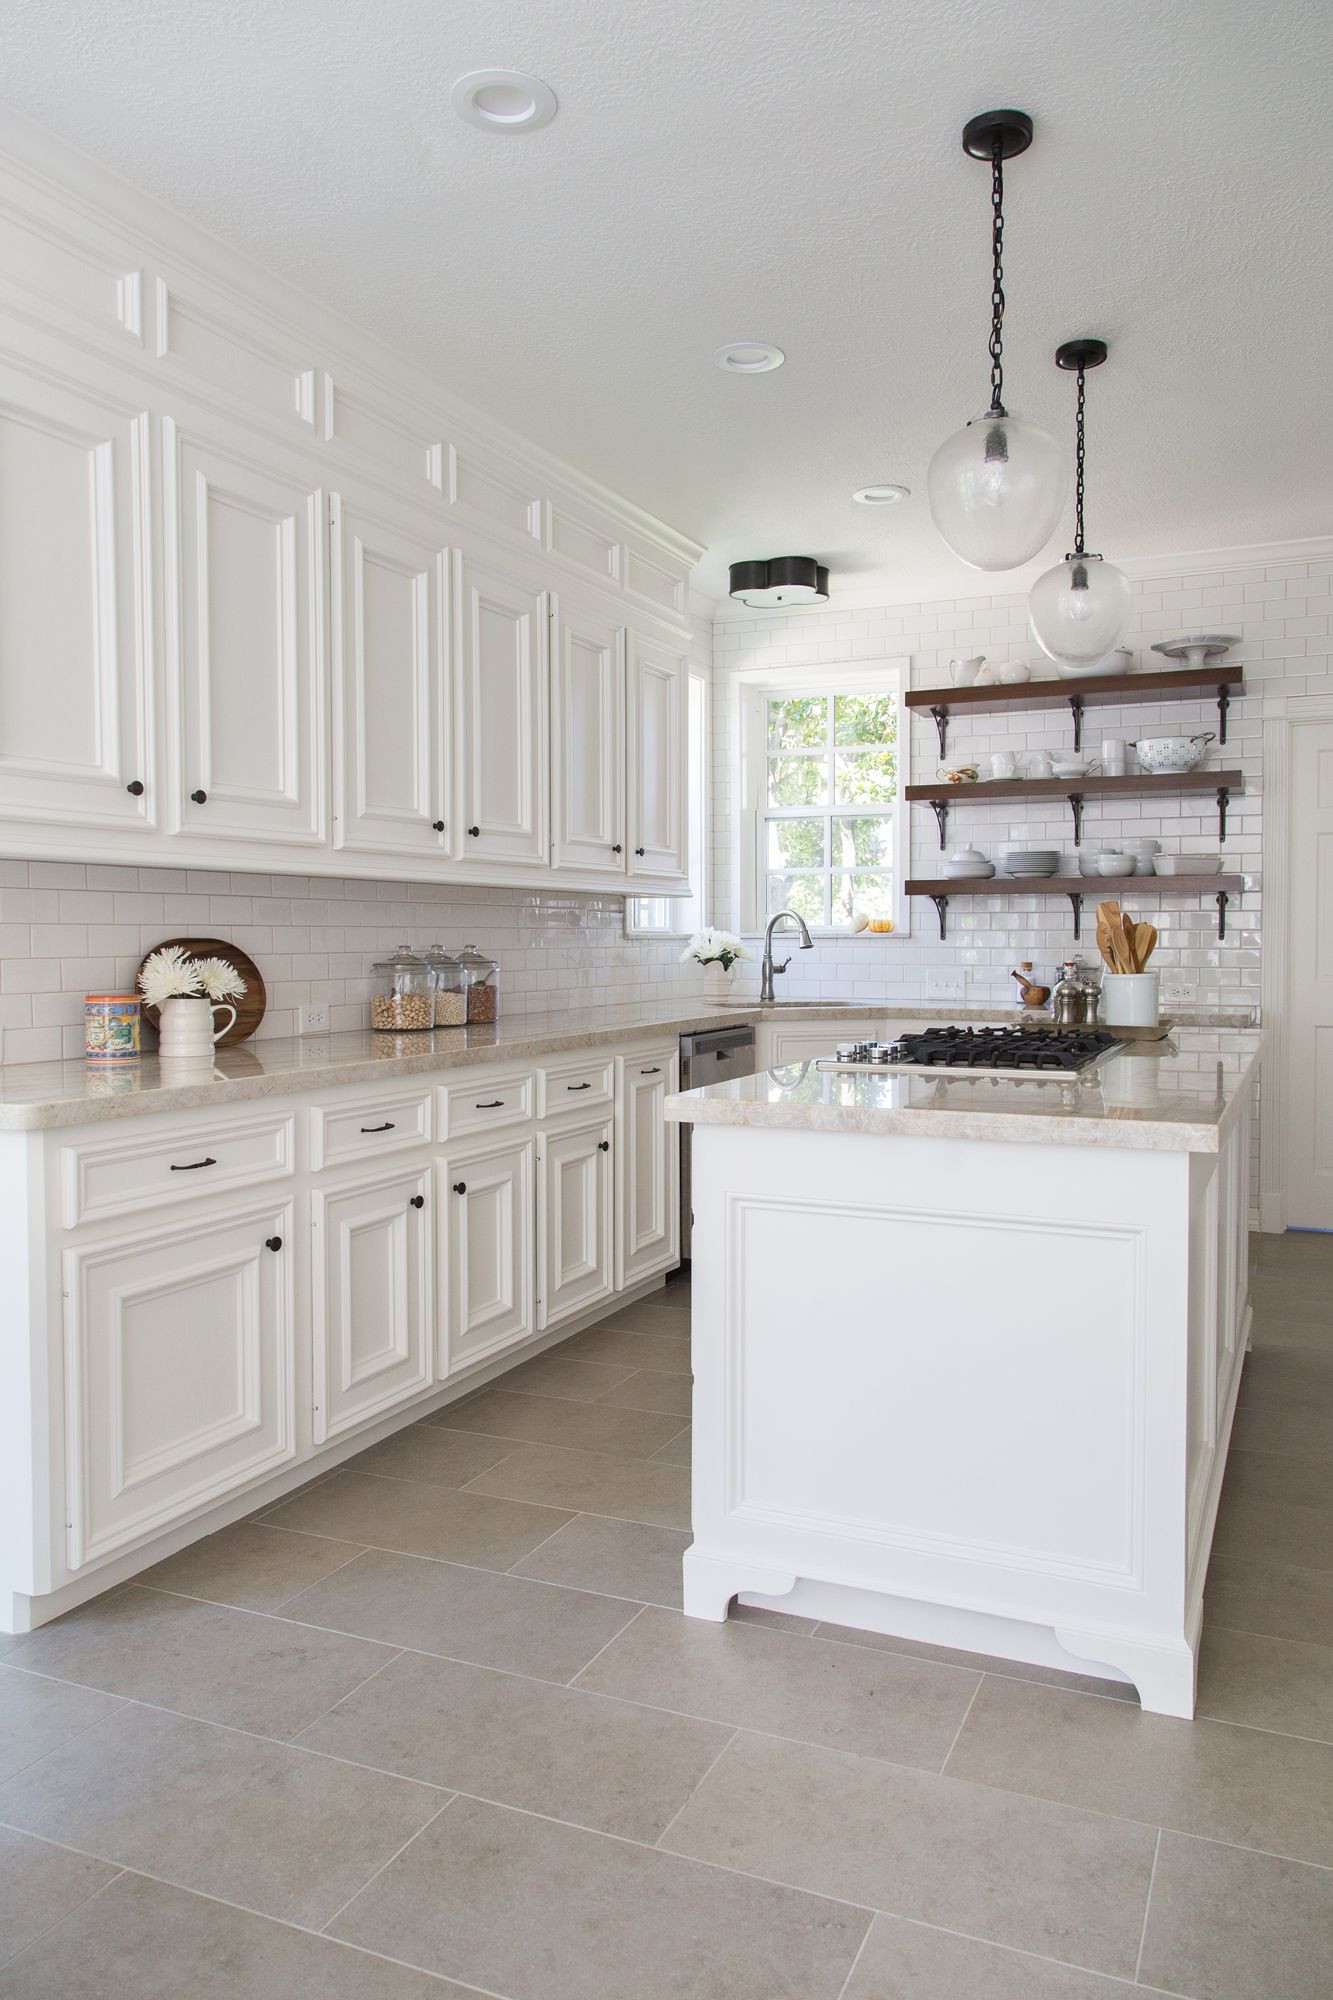 22 Awesome Hardwood Flooring Depot Irvine Ca 2021 free download hardwood flooring depot irvine ca of before after a dark dismal kitchen is made light and bright with regard to farmhouse kitchen remodel interior designer carla aston photographer tori asto